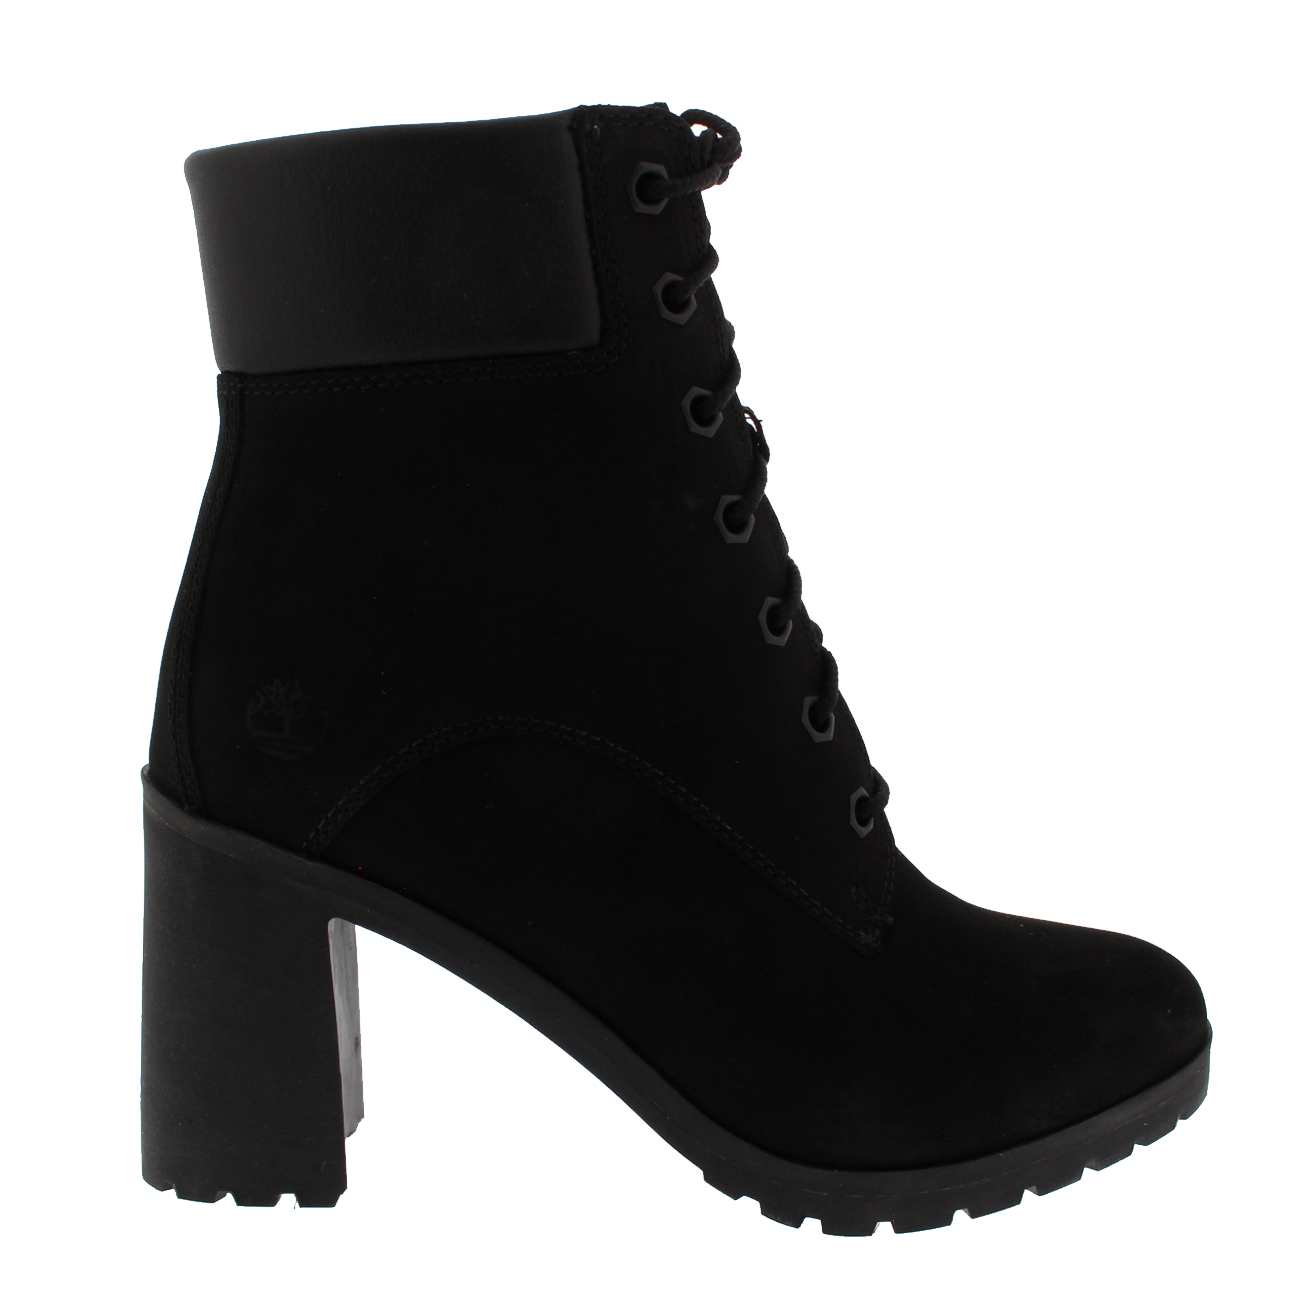 d8fa58ff6ab5 Details about Ladies Timberland Arllington 6 Inch Lace Festival Sassy High  Heel Boot All Sizes